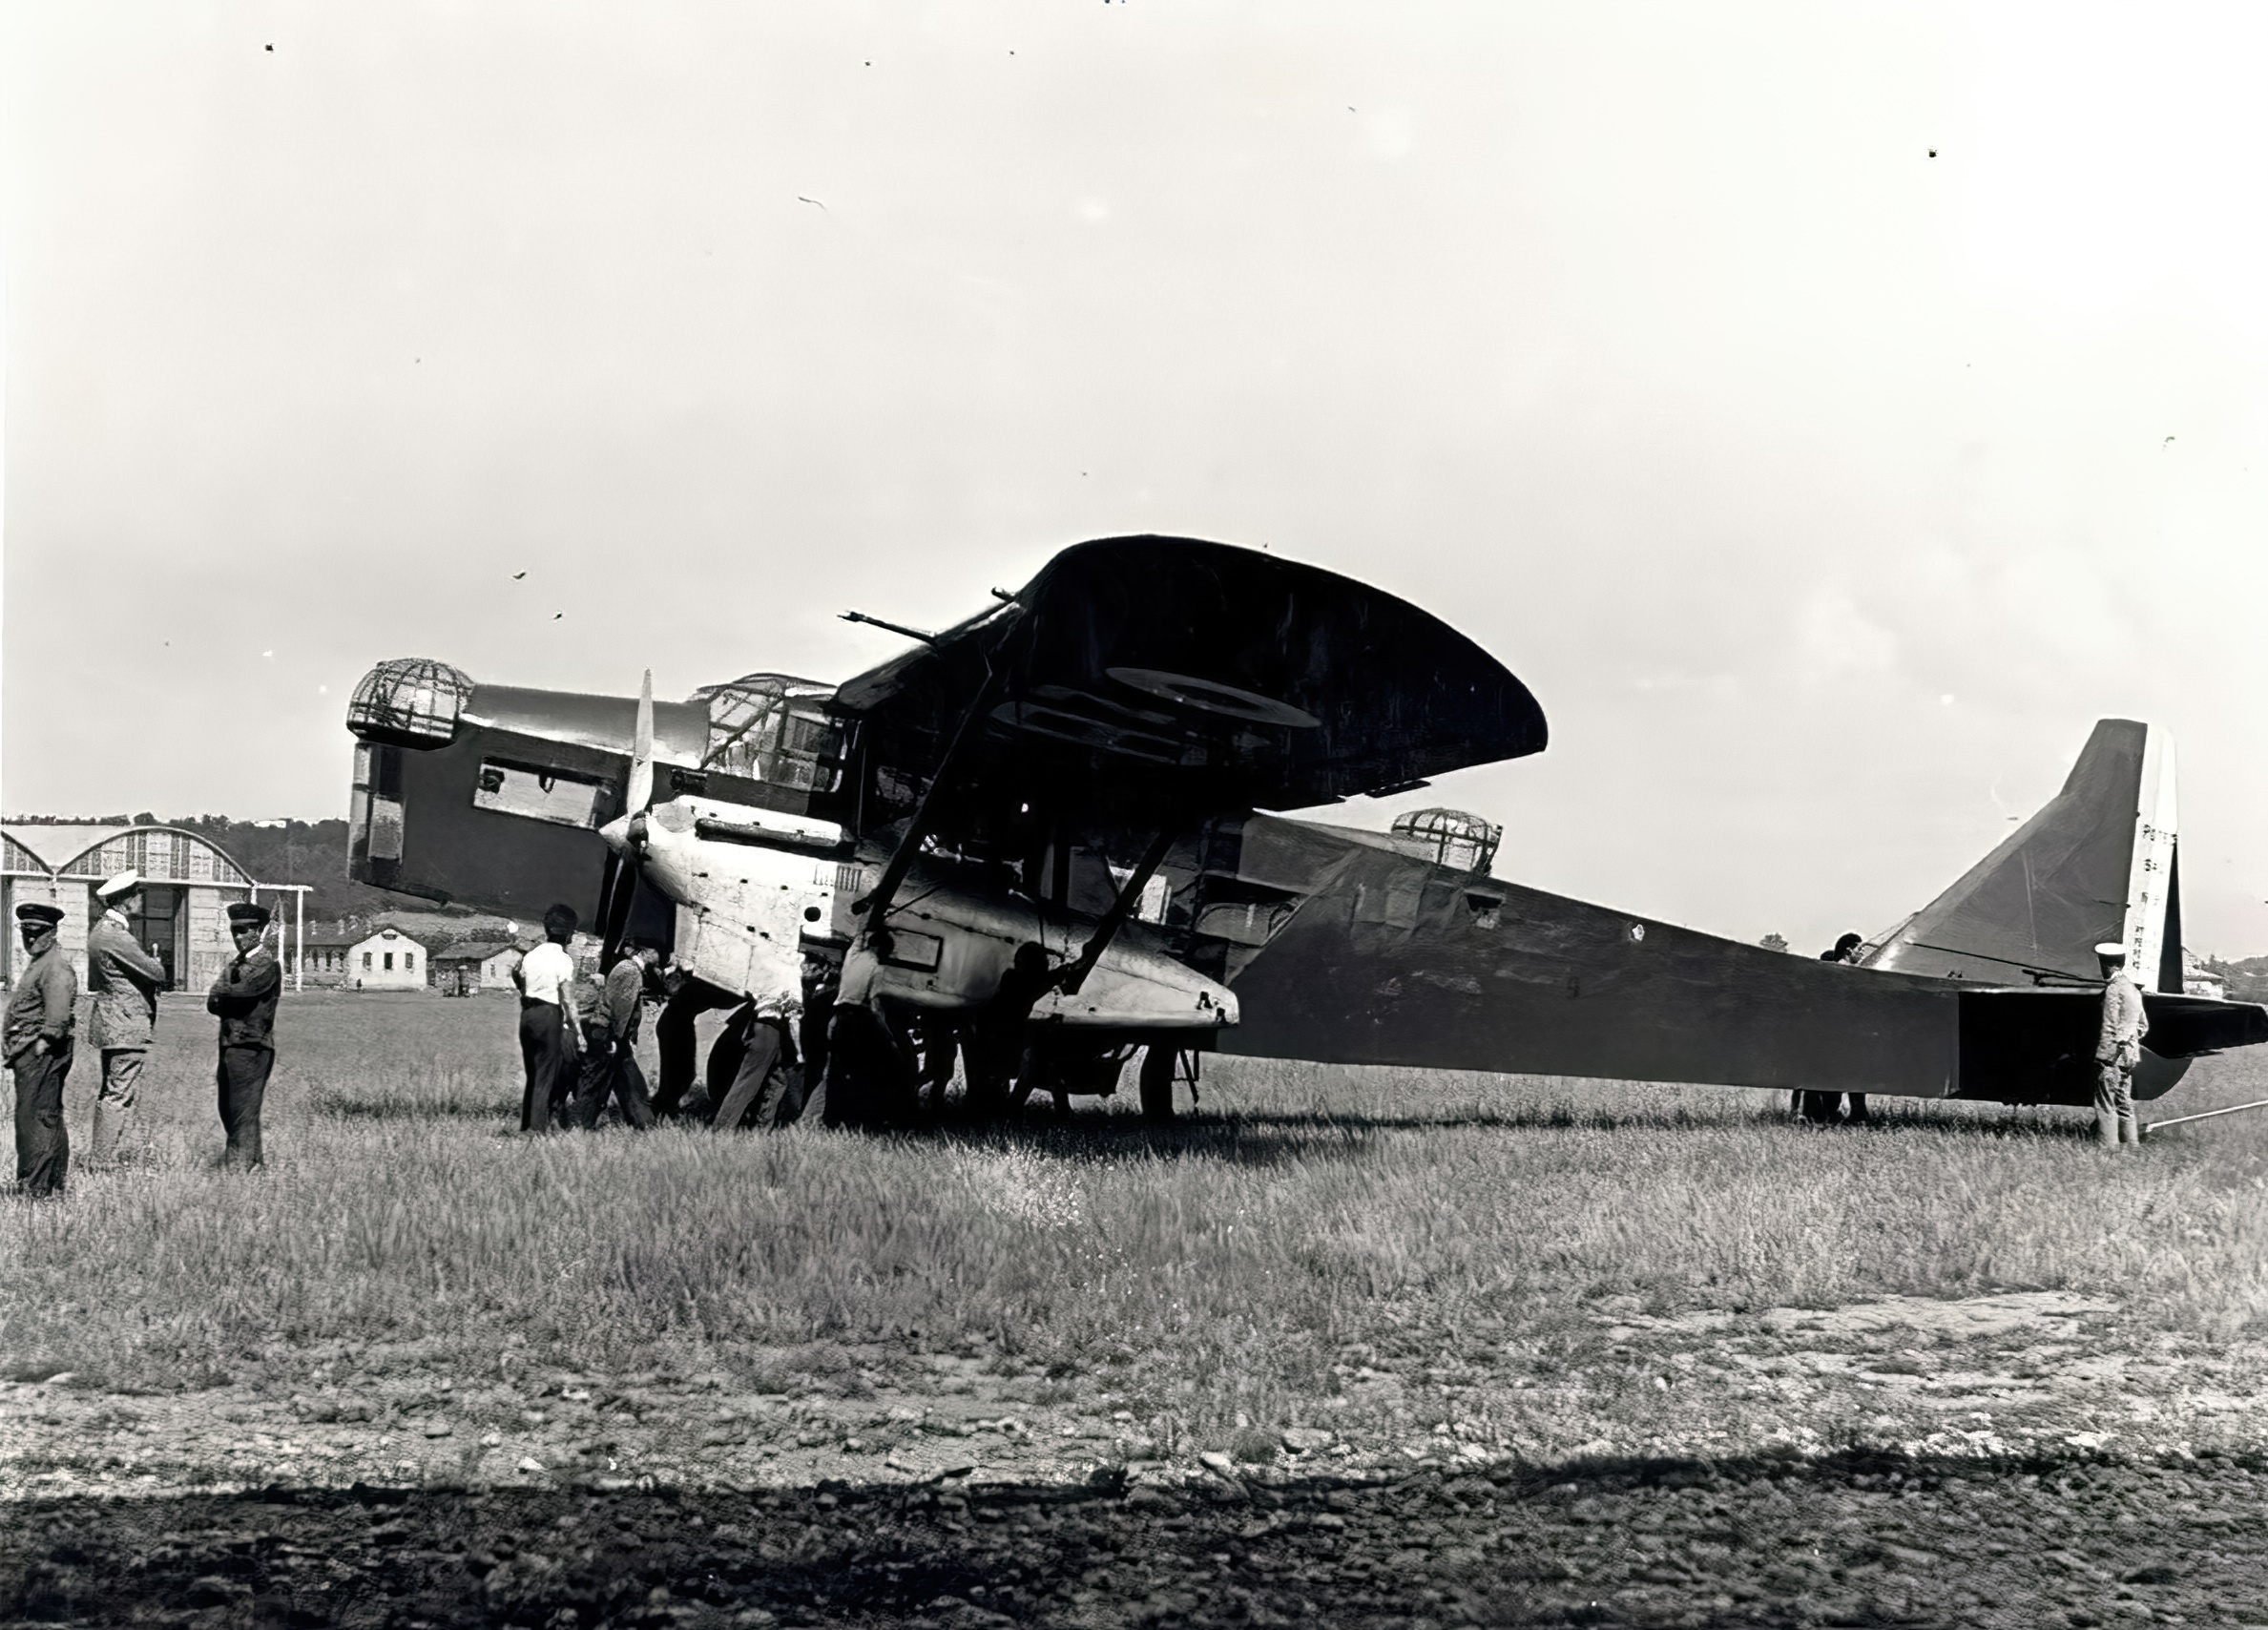 French Airforce Potez 540 being refueled at a French airbase France ebay 04